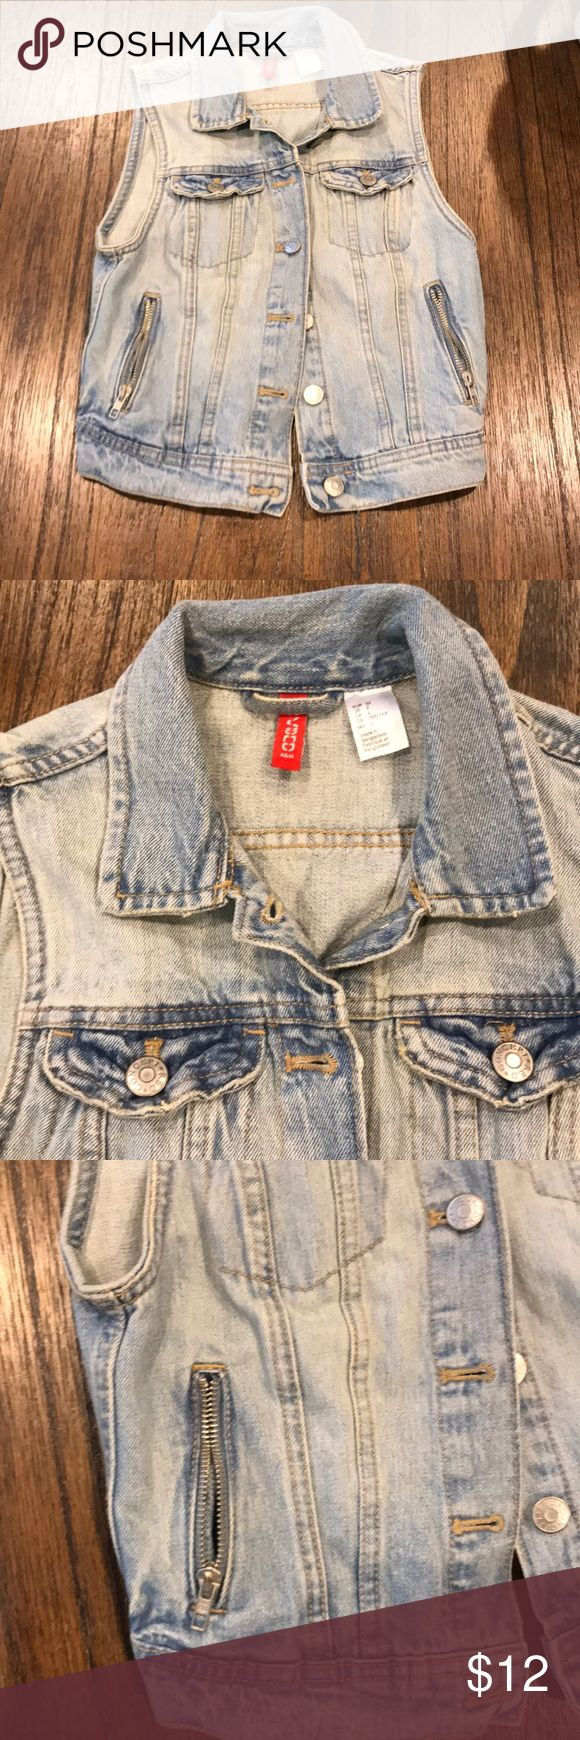 Sleeveless jean jacket Light blue washed worn once H&M Jackets & Coats Vests